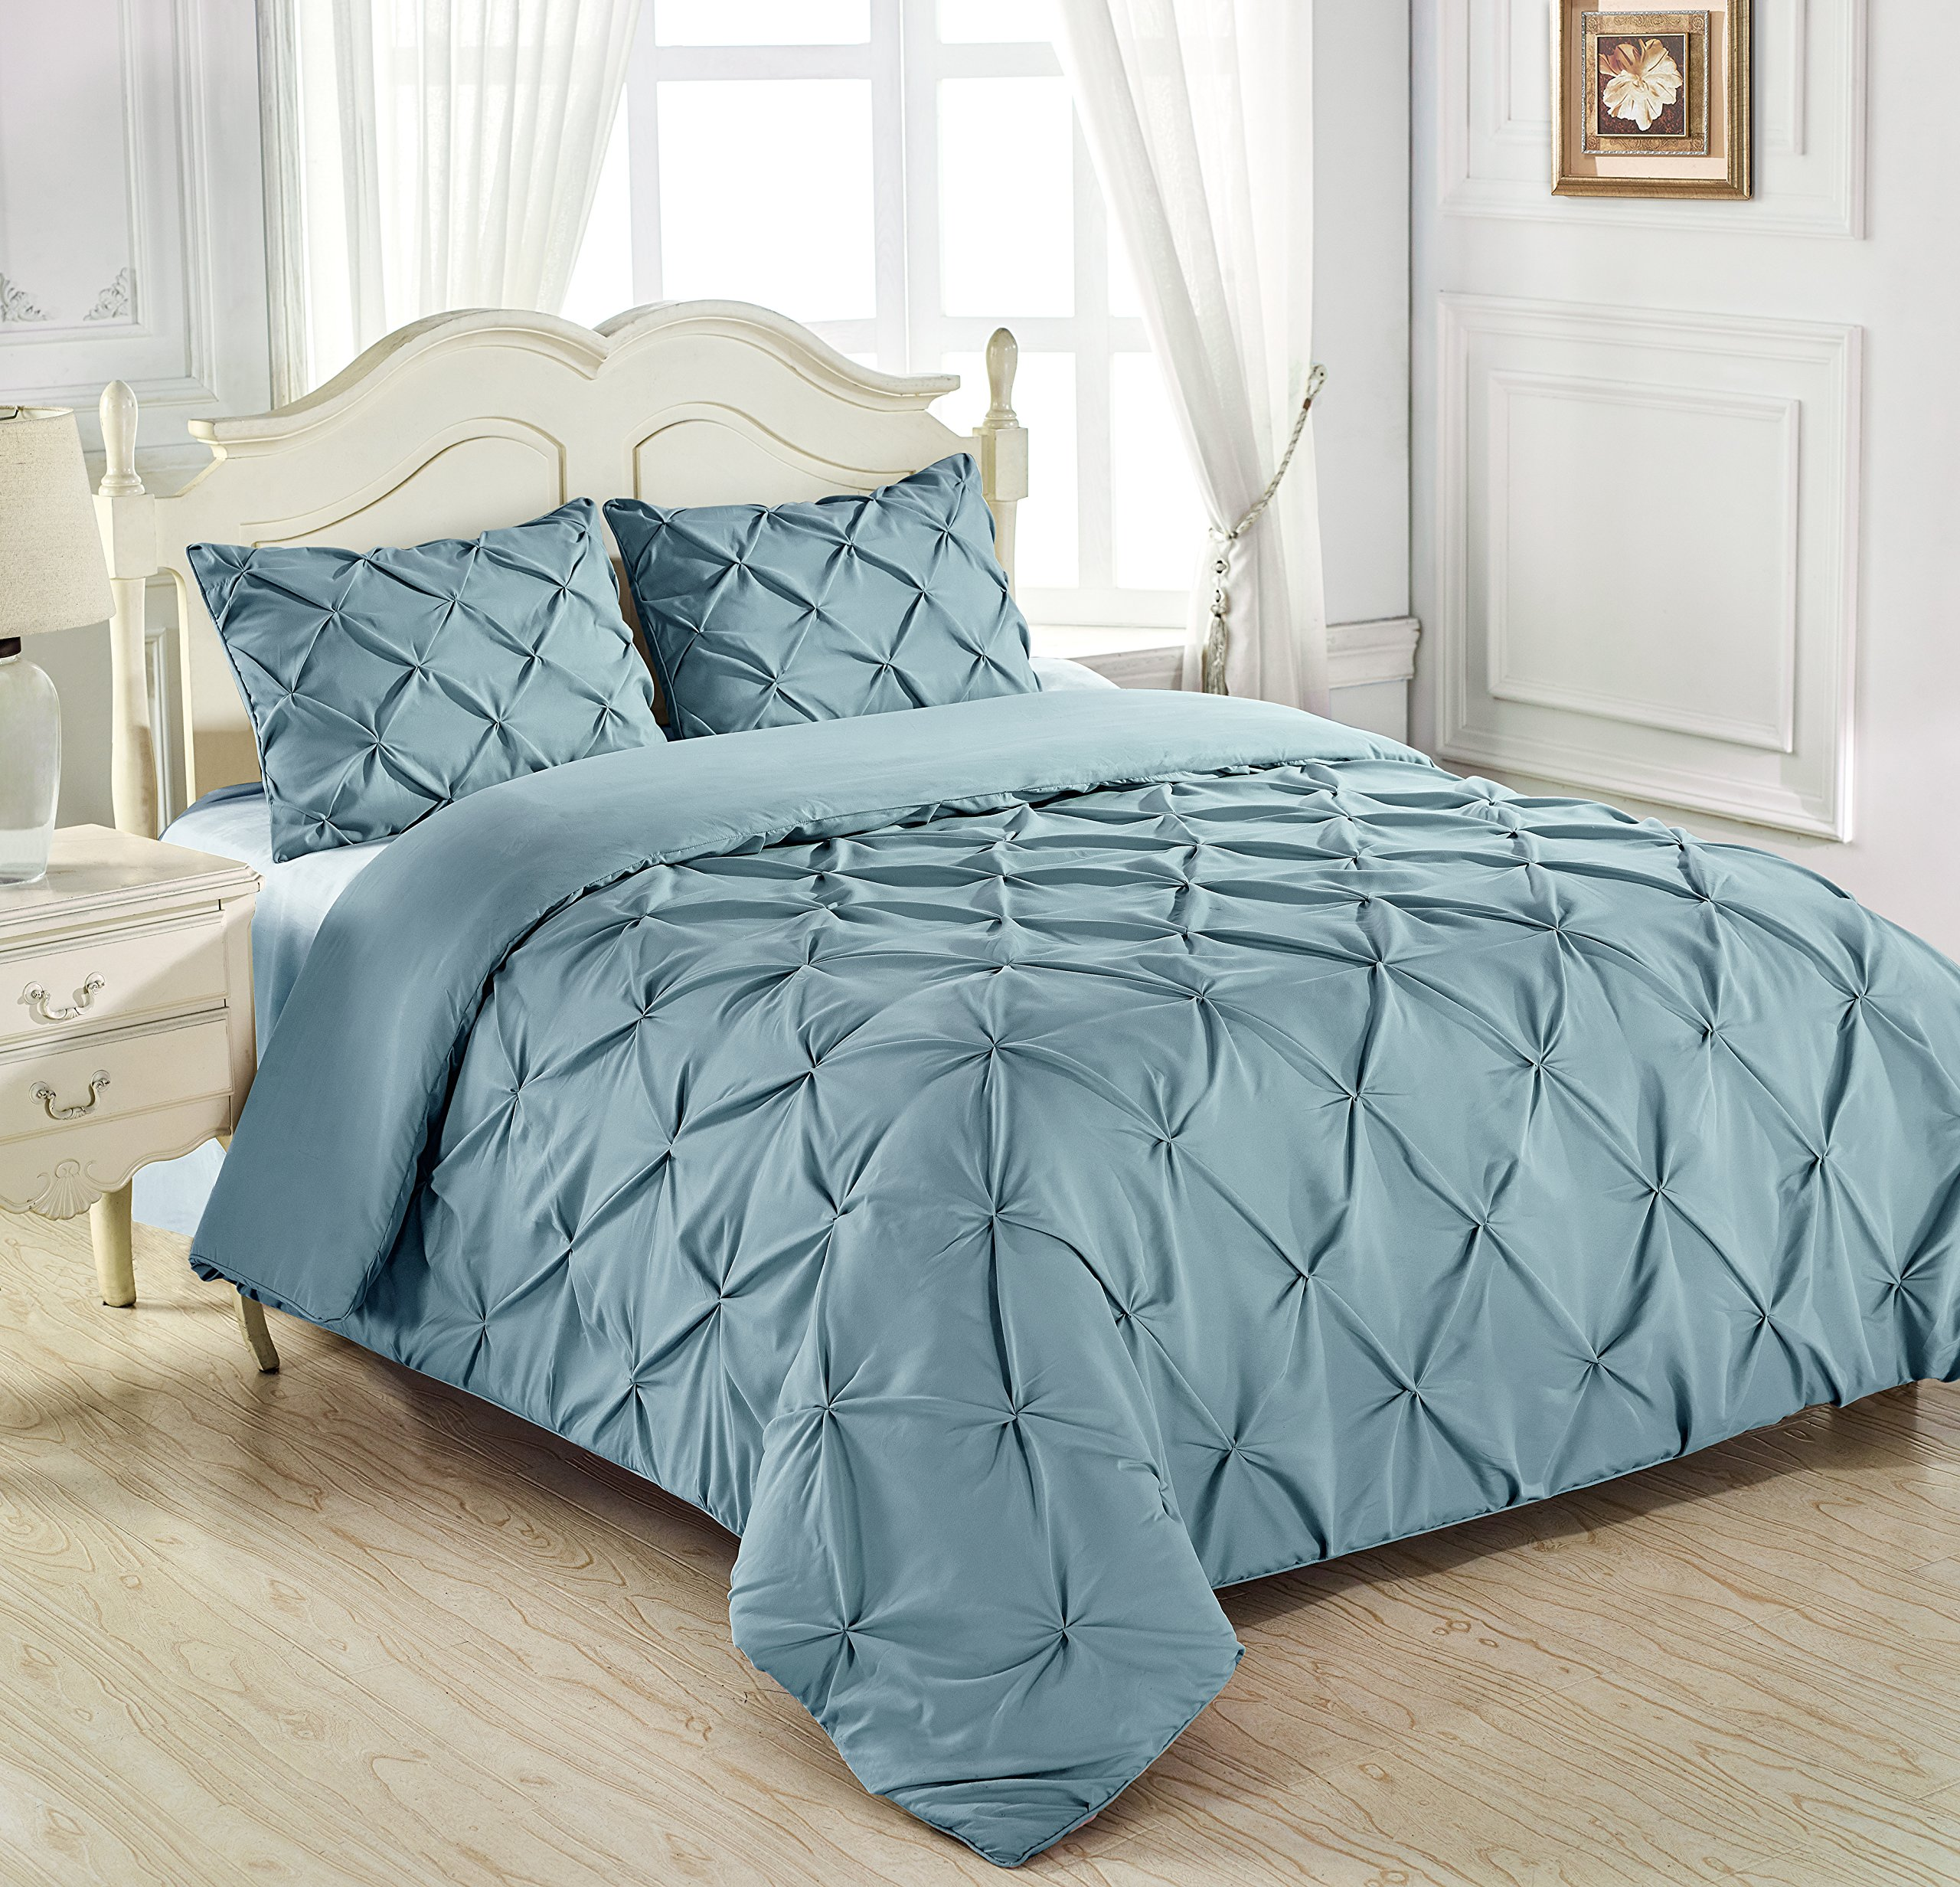 King & Queen Home Reinforced Double Stitch 3 Piece Pinch Pleat Comforter Set (Cali King, Spa Blue) by King & Queen Home (Image #4)